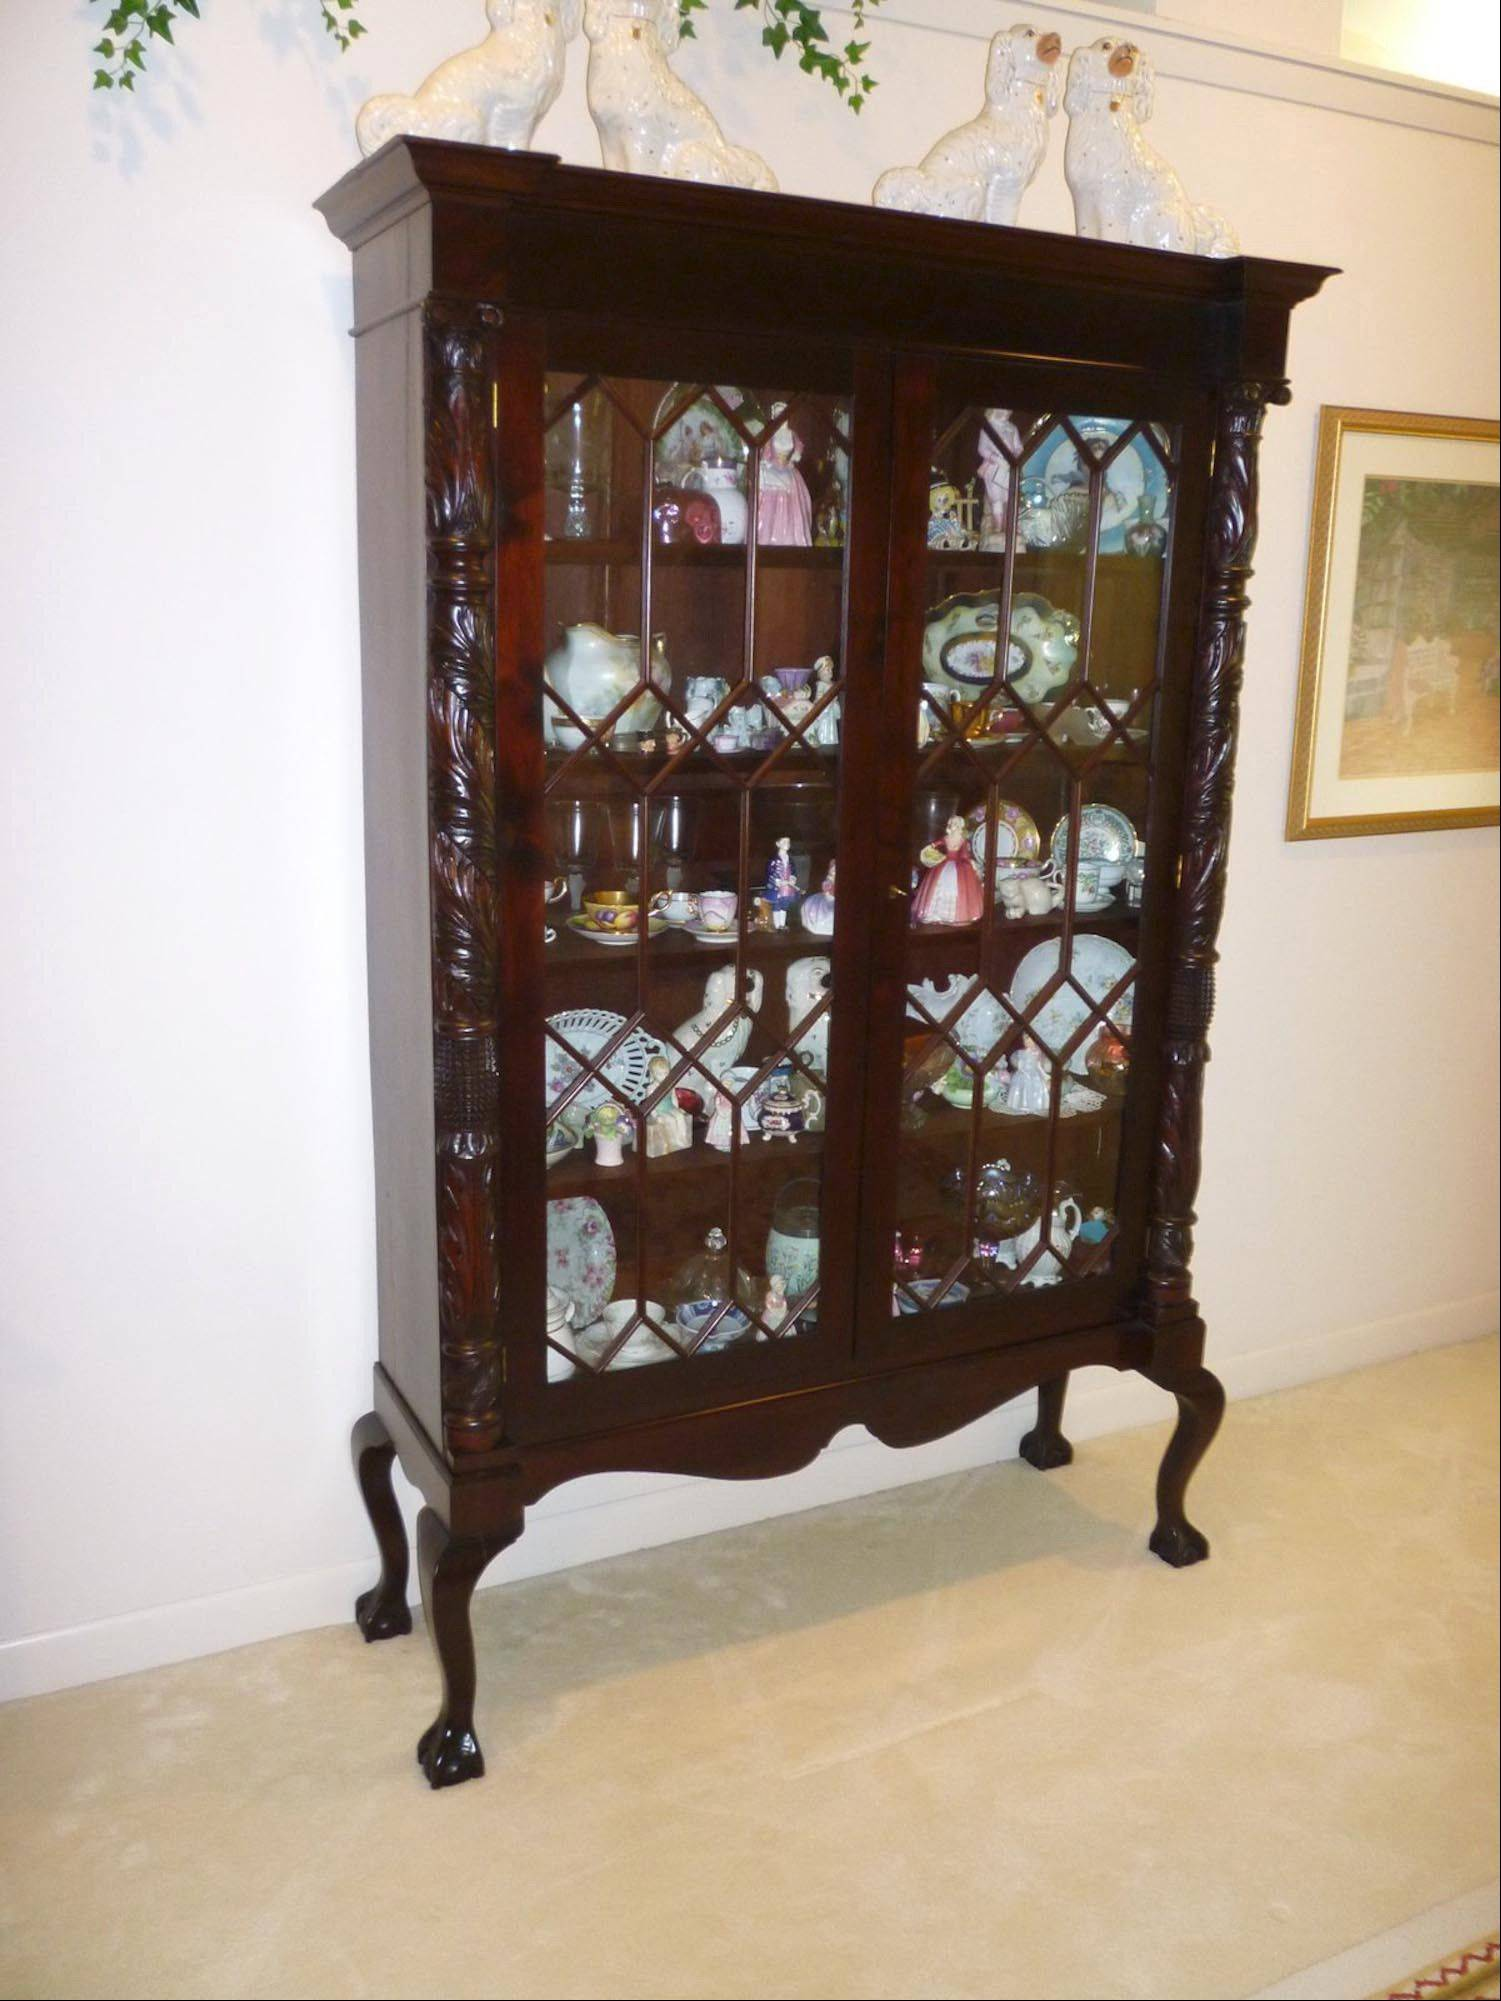 This china cabinet may seem to have the style of an antique to many, but what is its real age?